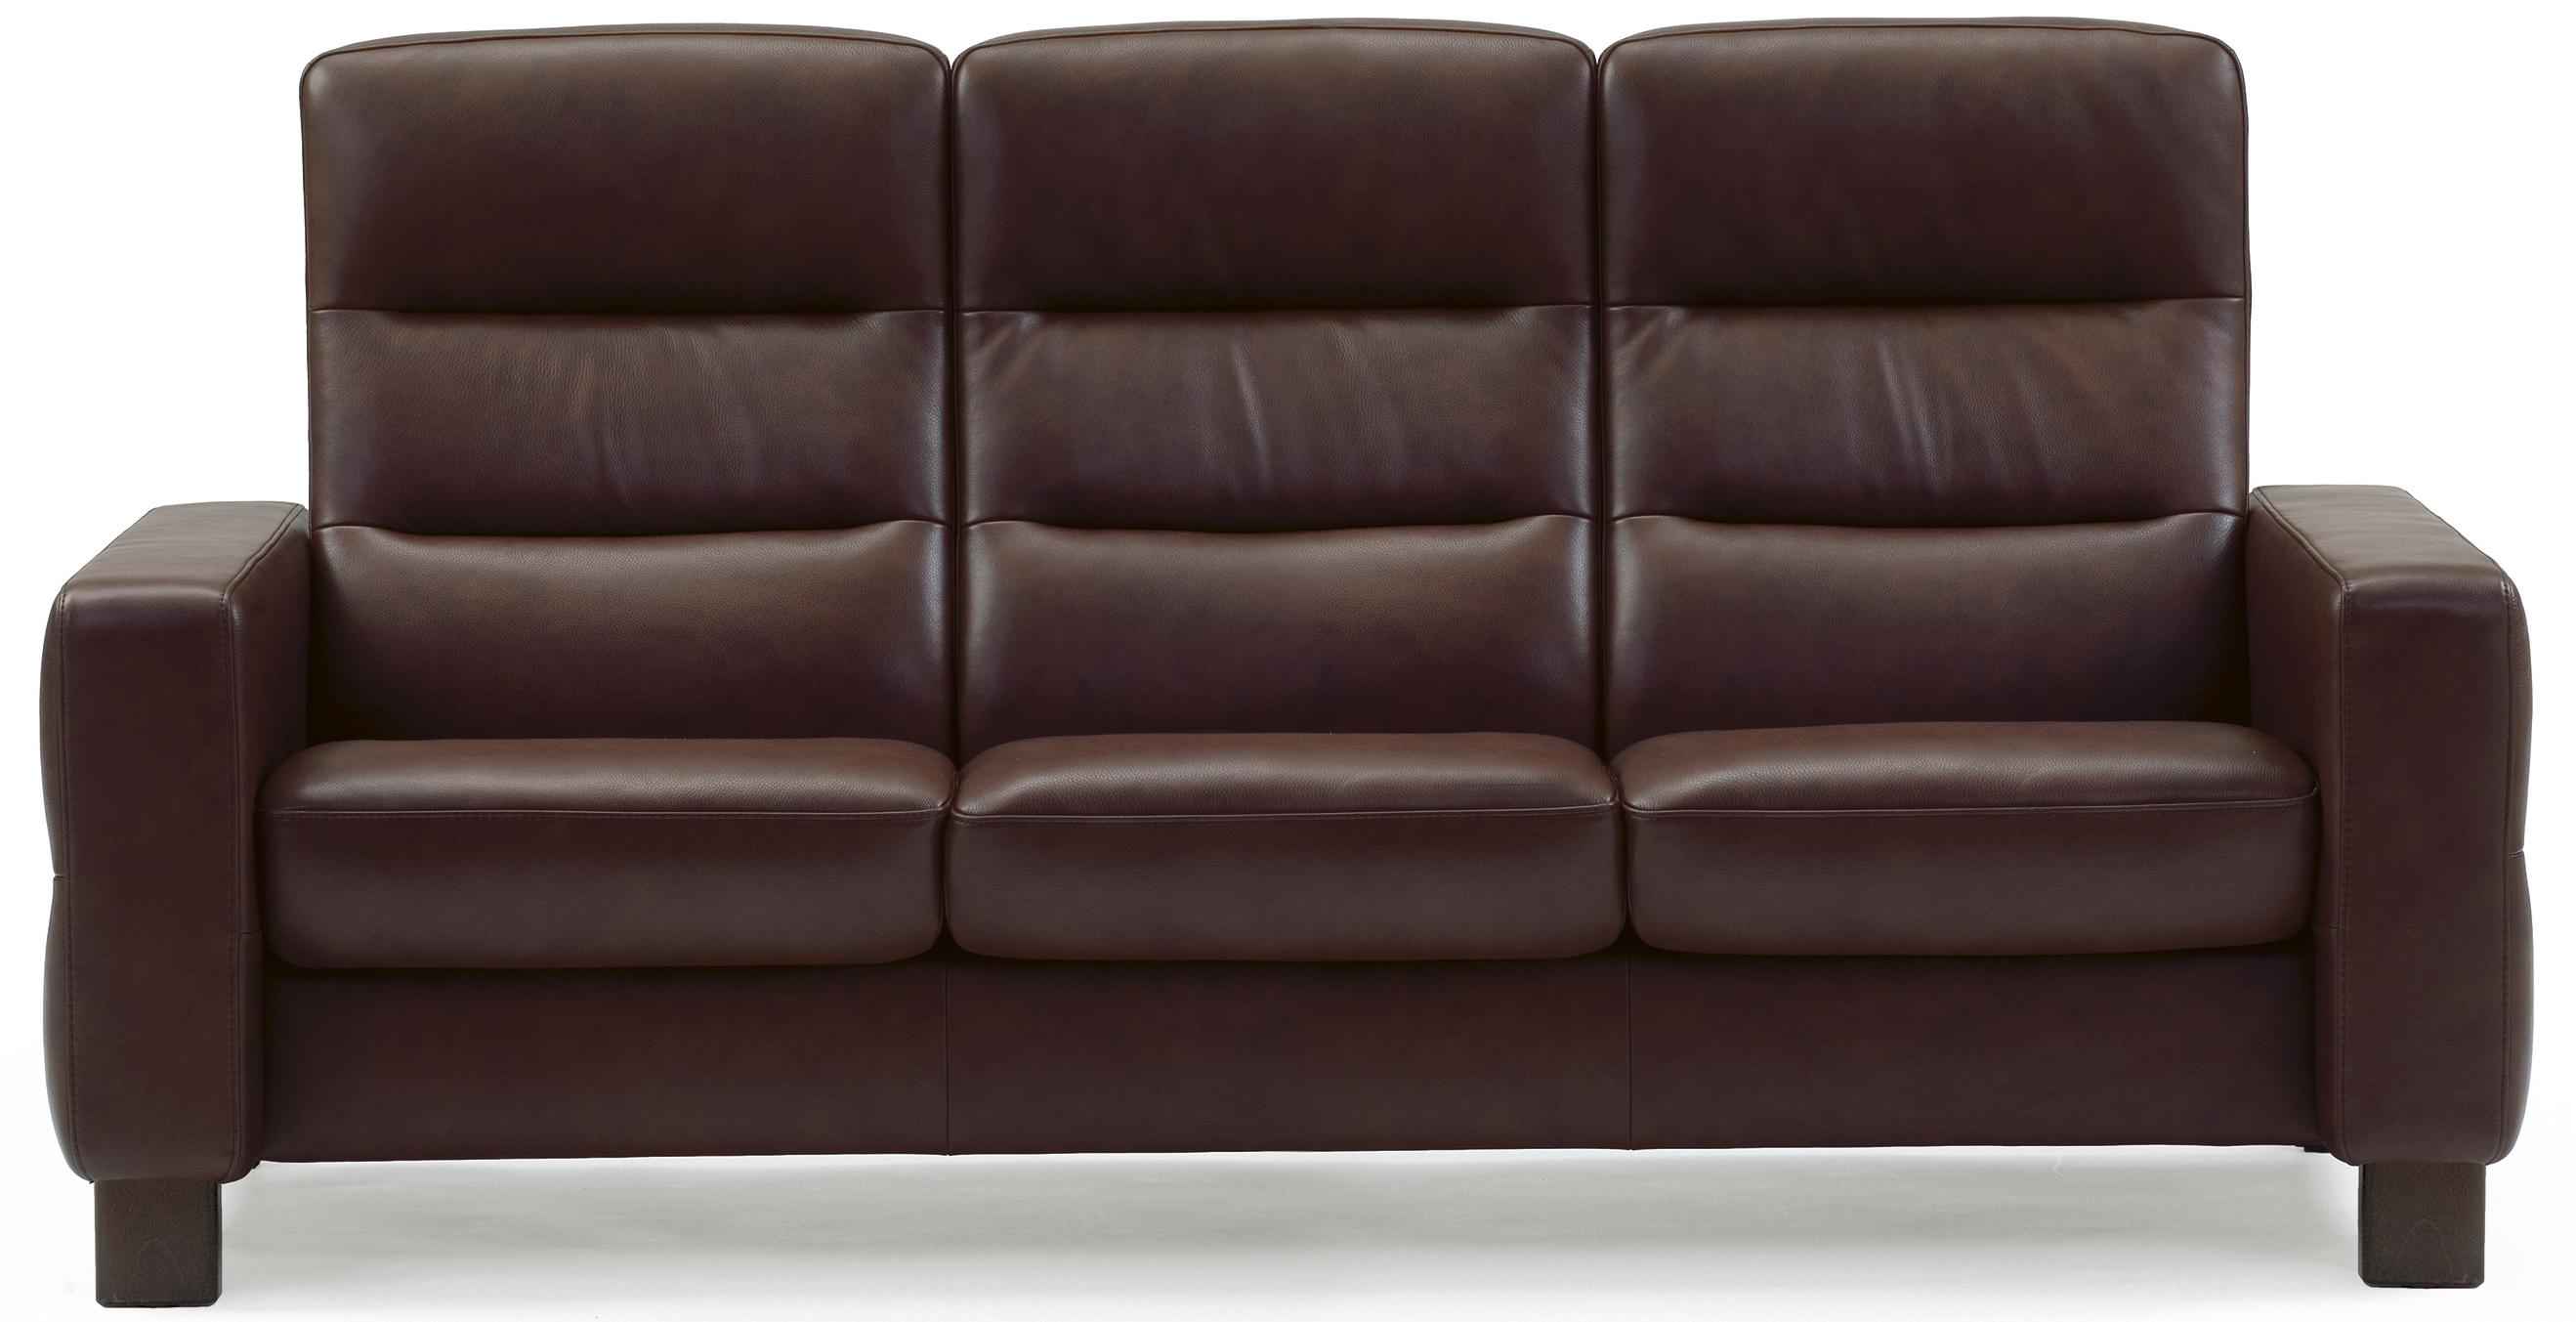 Entente High Back Sofa High Back Sofa Related Keywords Suggestions High Back